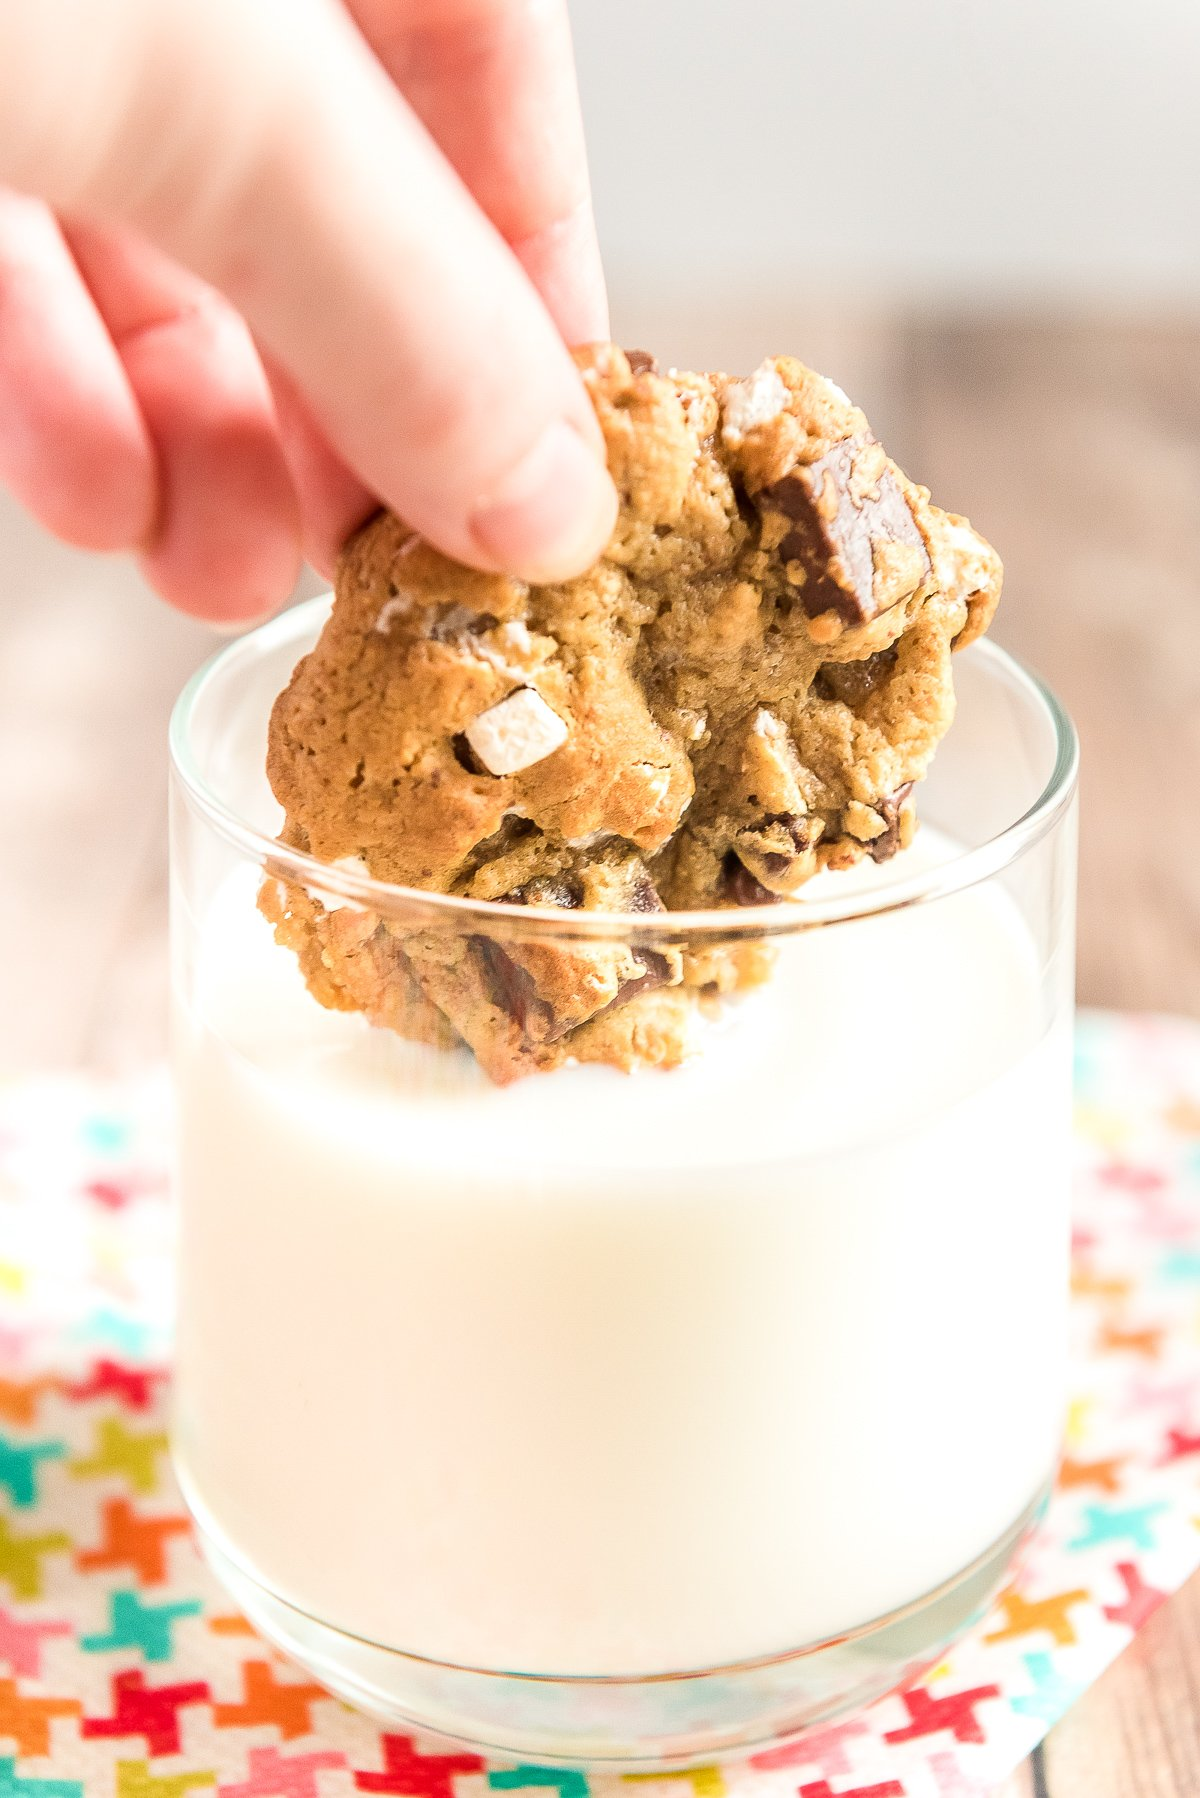 S'mores cookie being dunked in a glass of milk.